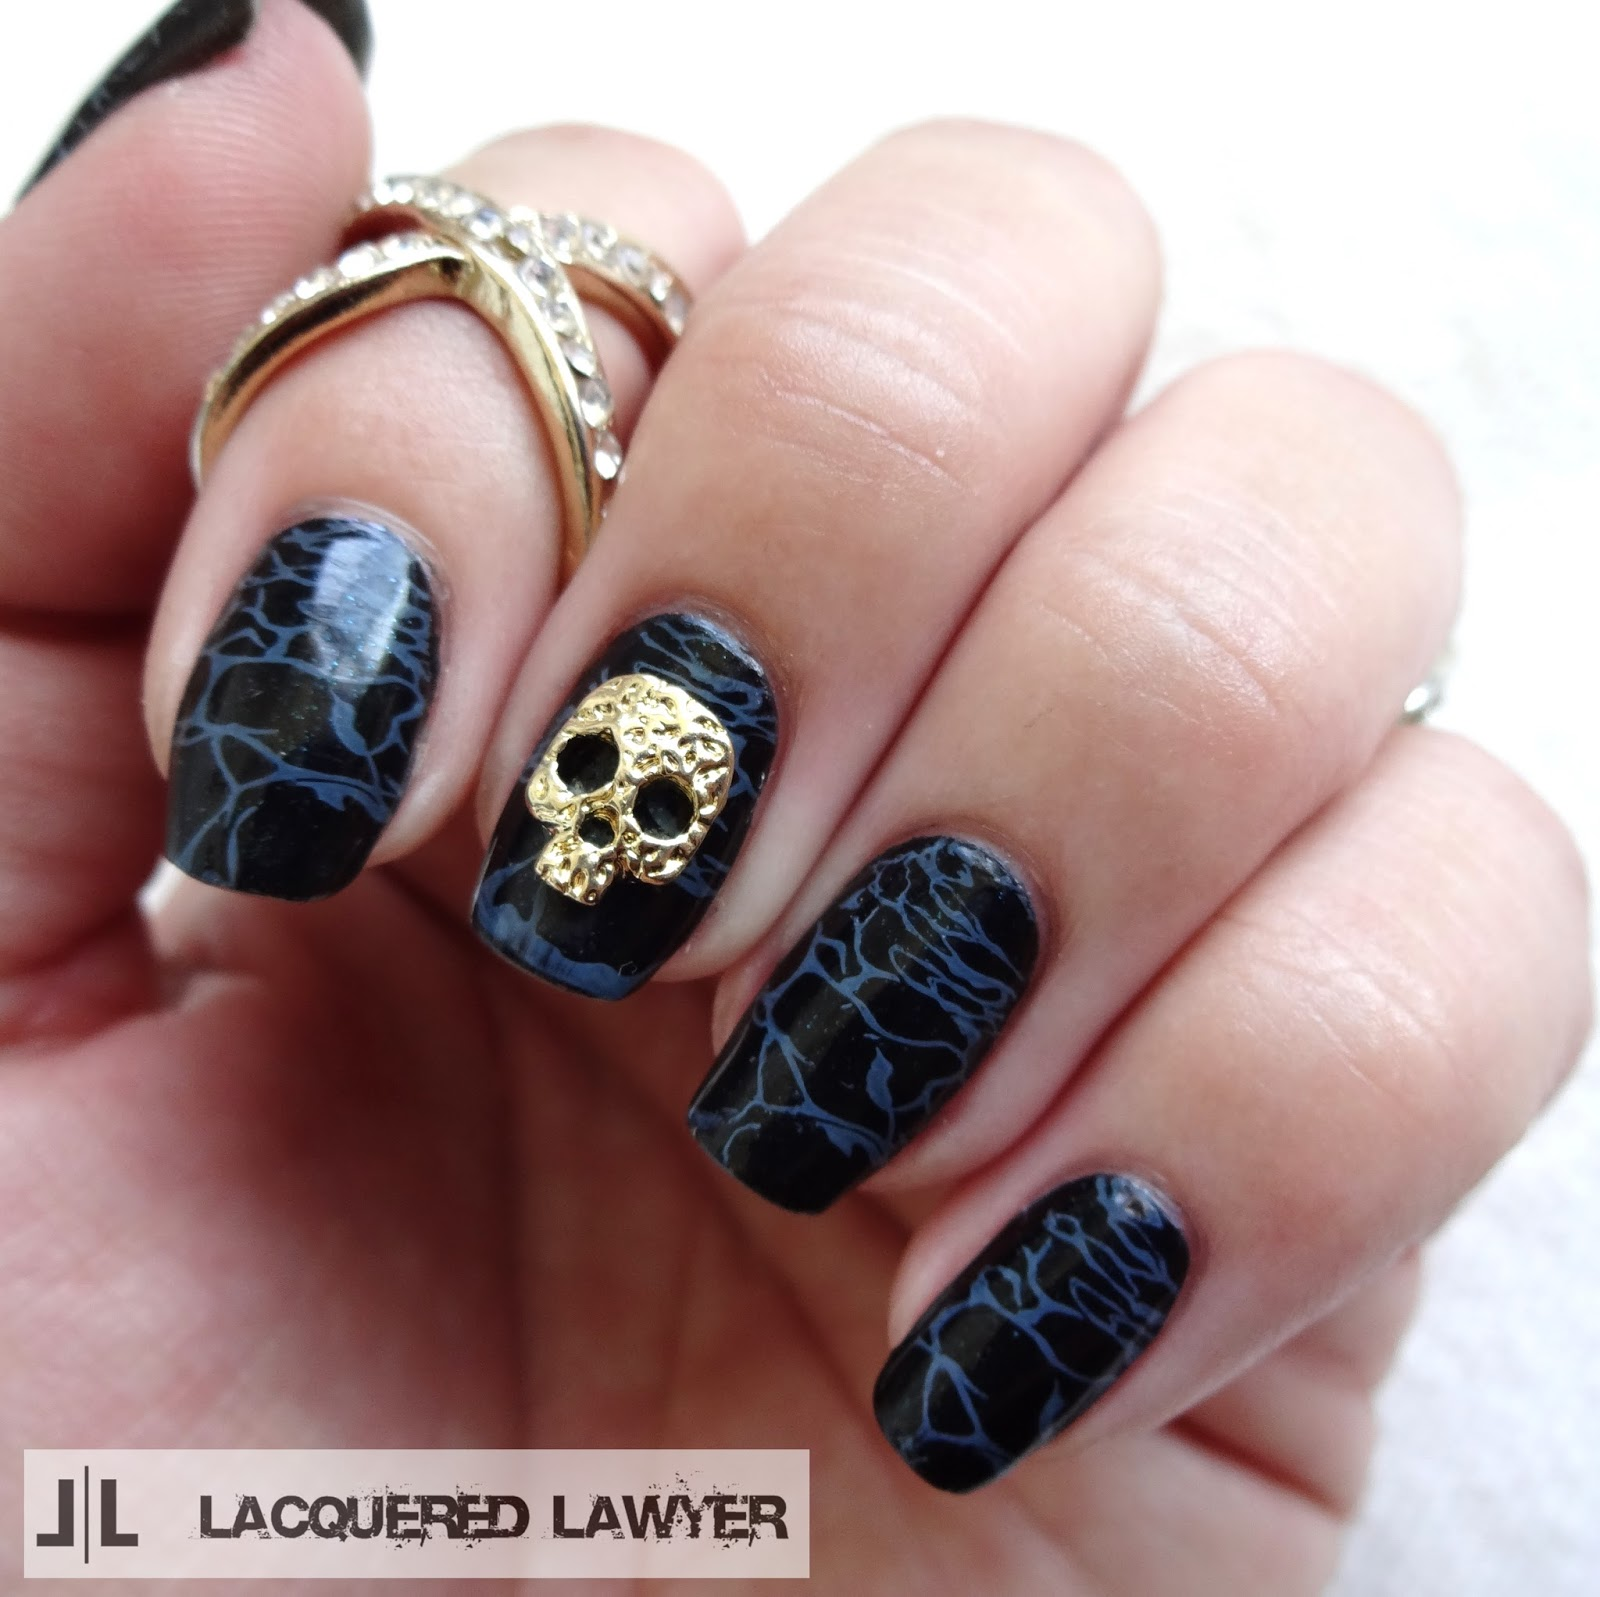 Black sea nail art with skull charm